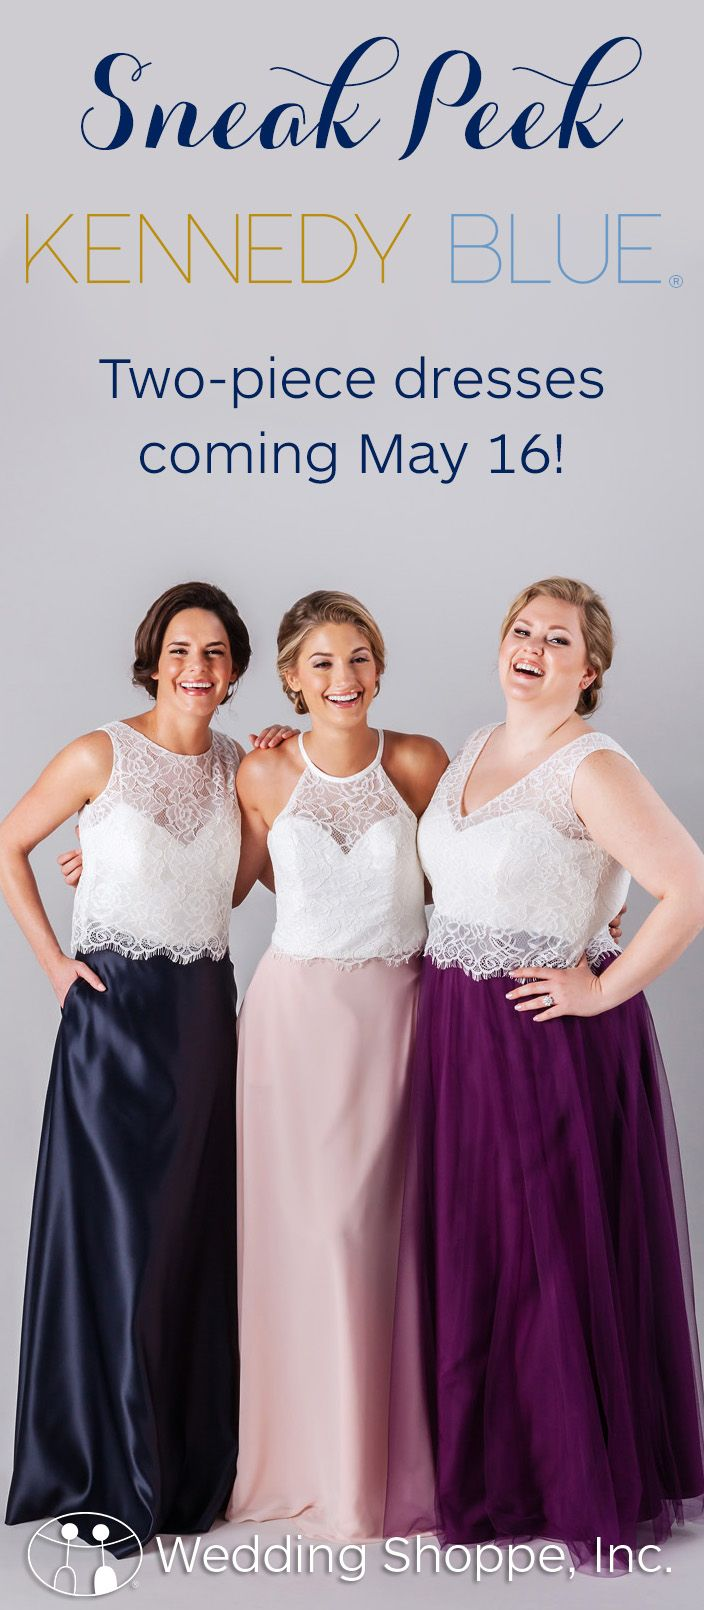 NEW! Two-piece bridesmaid dresses from Kennedy blue are coming soon! Shop online May 16!